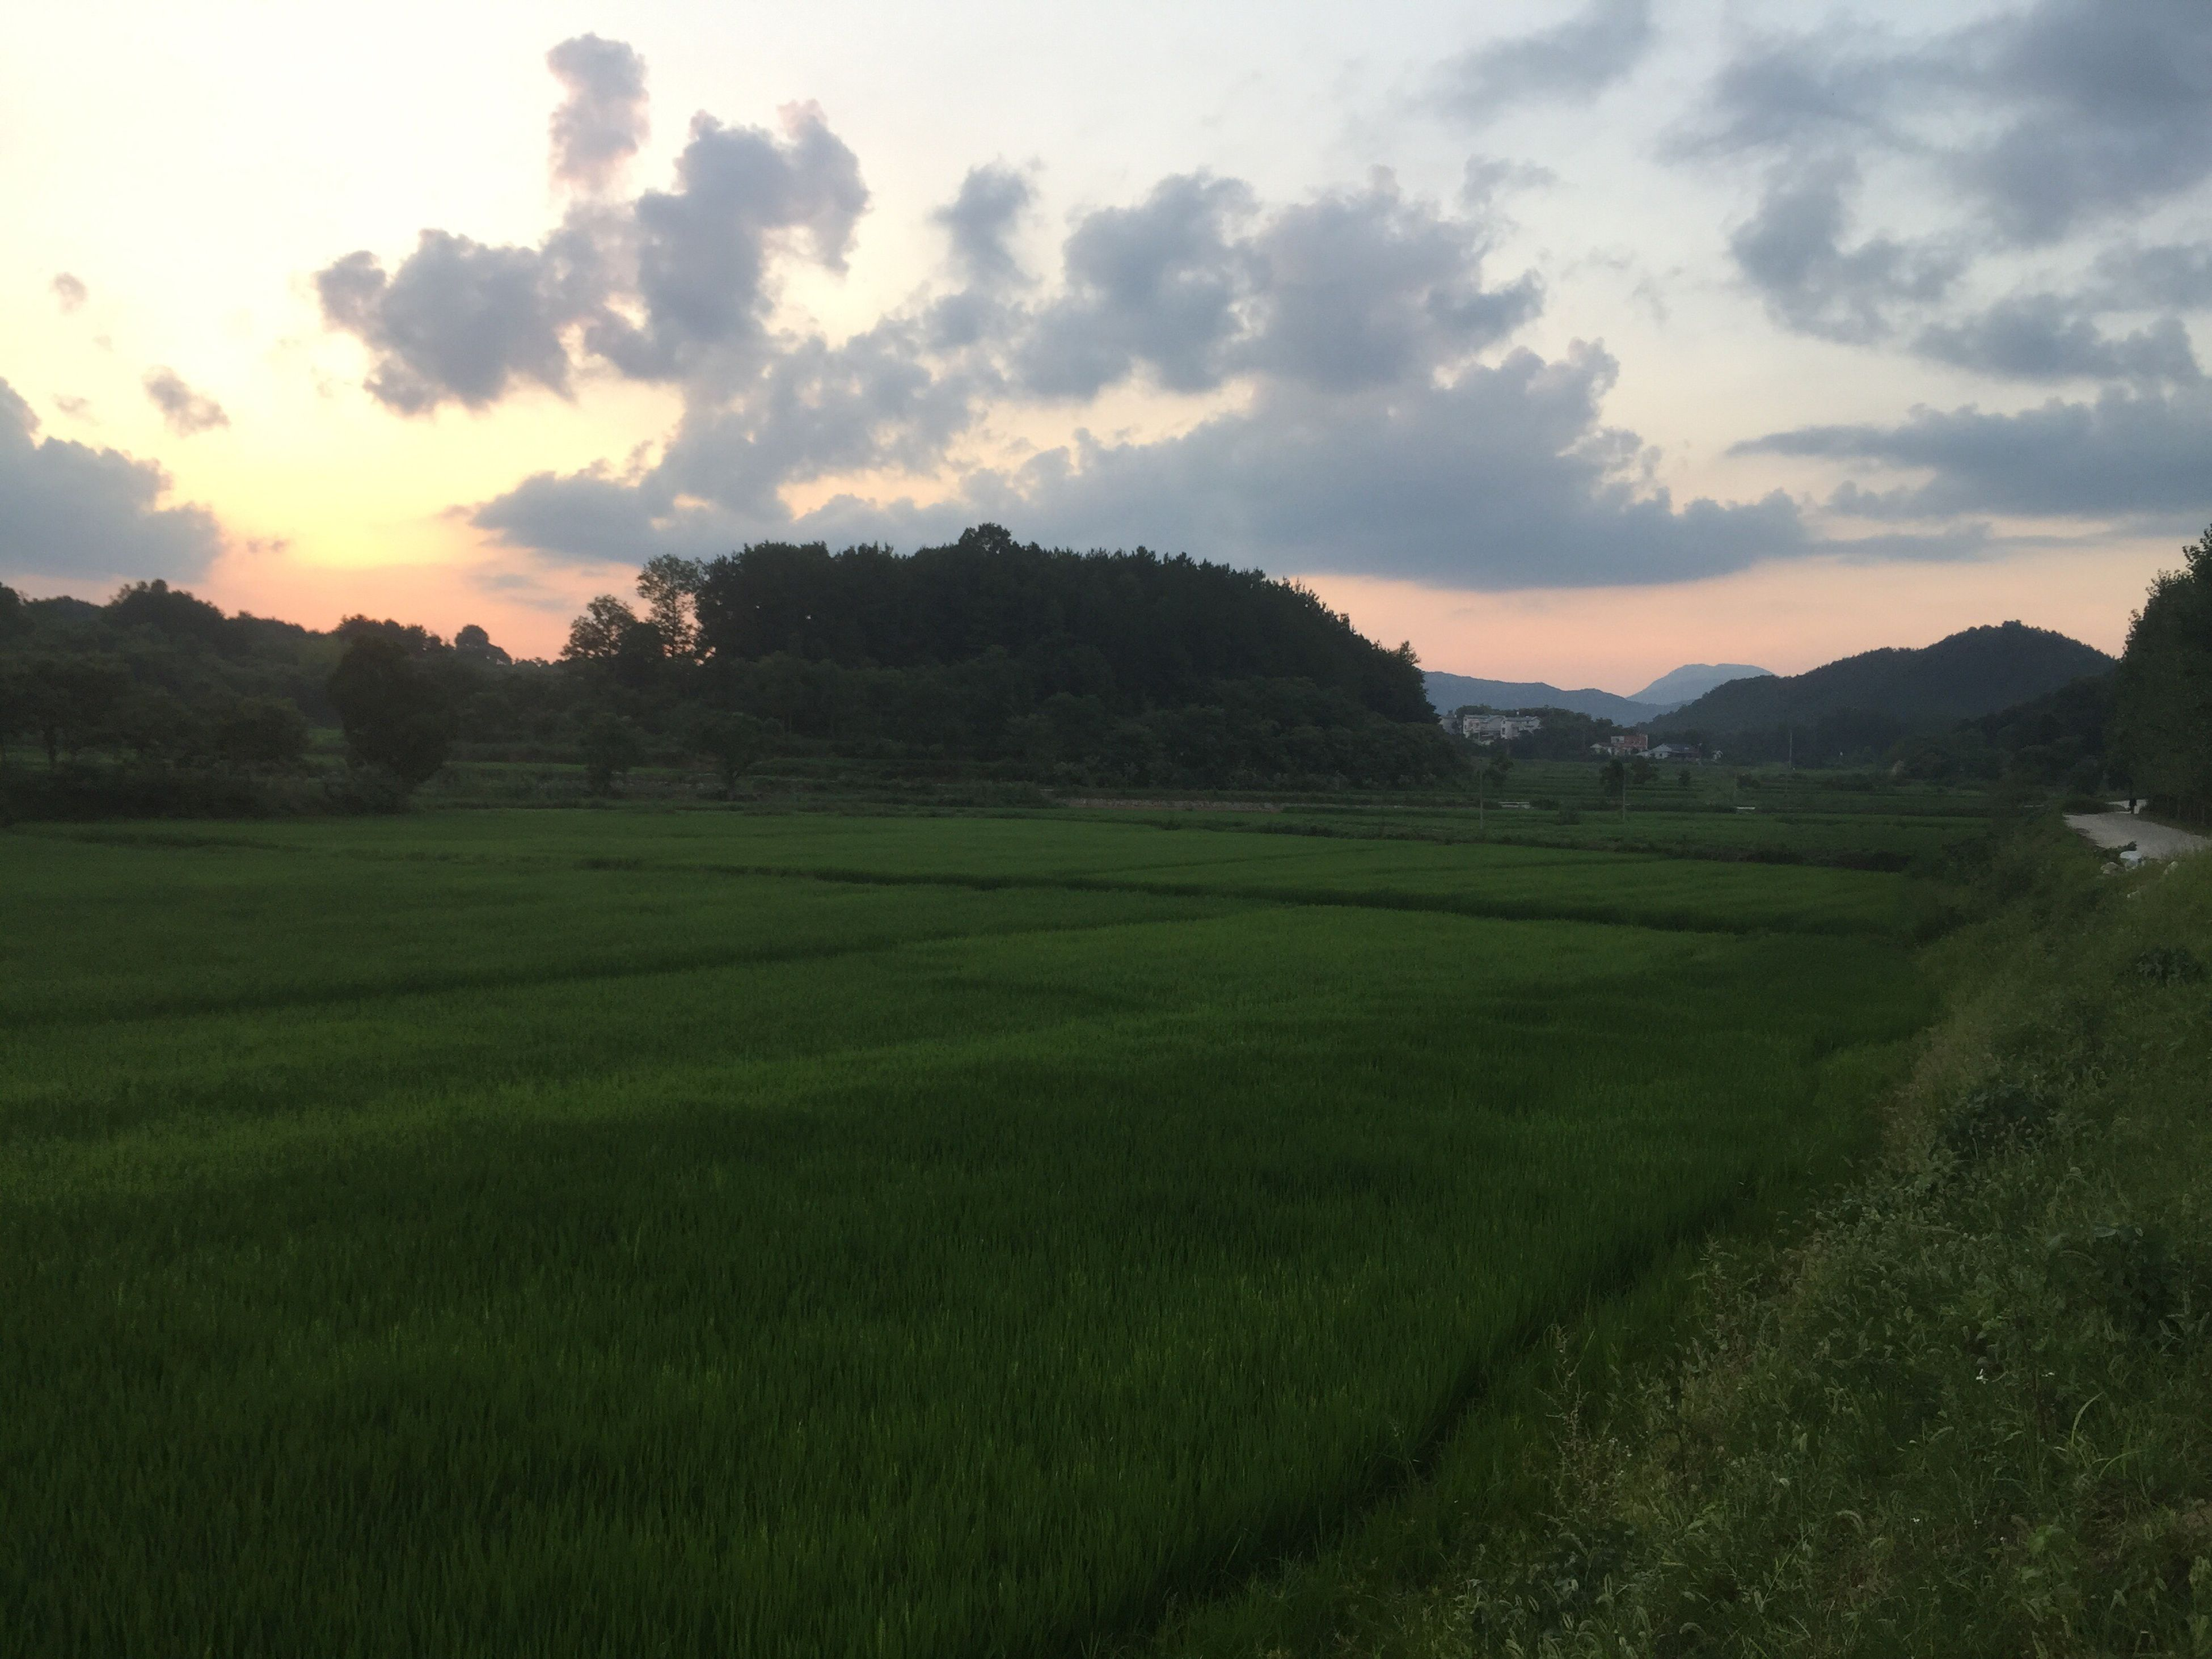 grass, field, nature, sunset, landscape, tranquil scene, tranquility, beauty in nature, growth, sky, scenics, no people, agriculture, cloud - sky, green color, outdoors, rural scene, tree, rice paddy, day